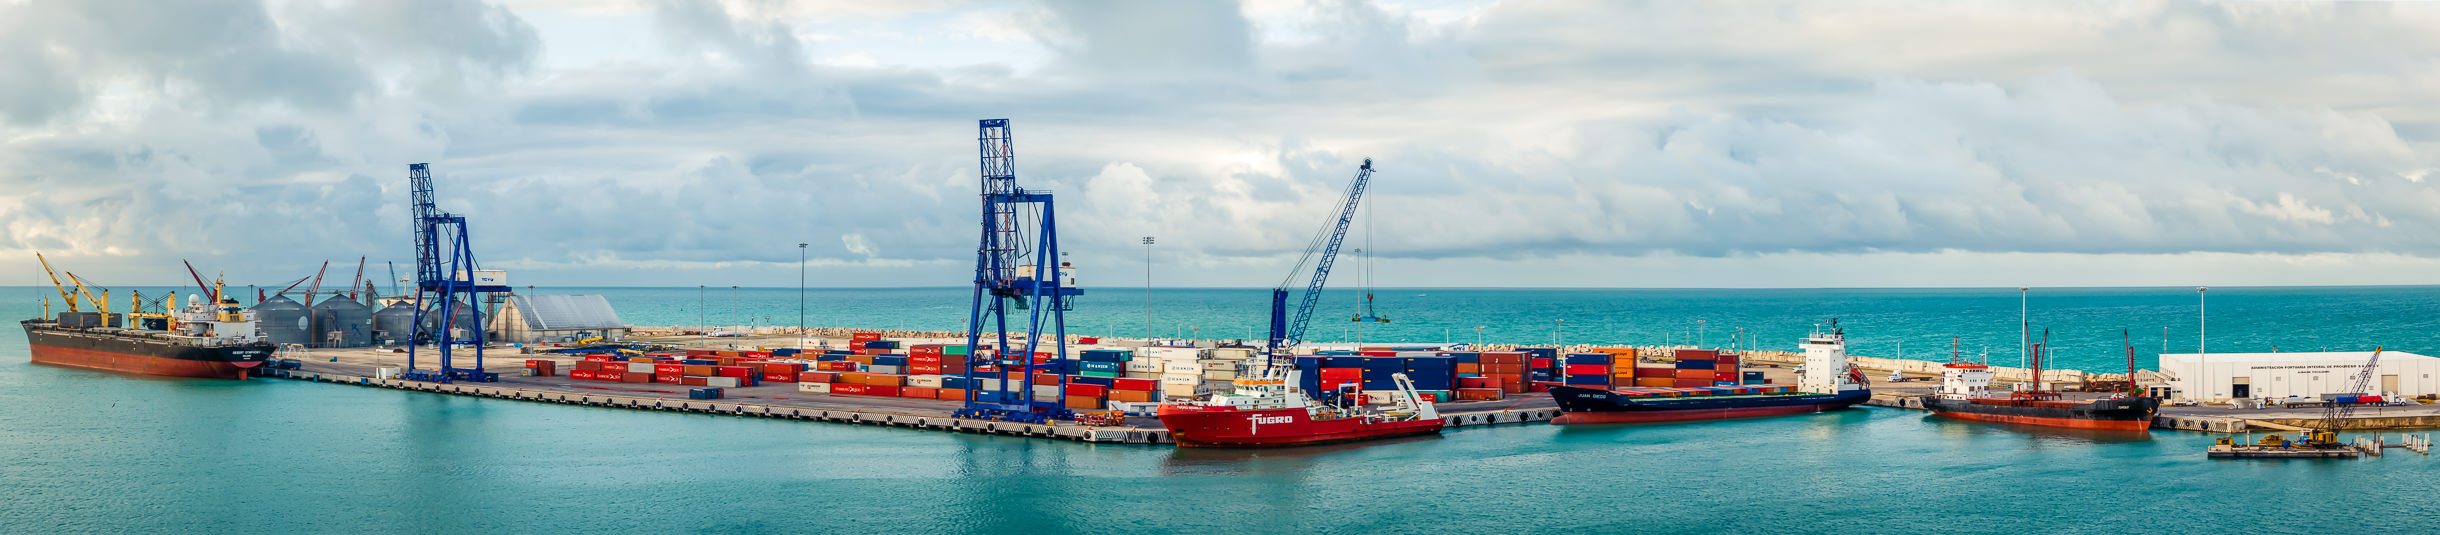 A panoramic view of the Terminal Remota—the cargo terminal for the Port of Progreso, Mexico, at the tip of a 6.5-km-long pier that reaches out into the Gulf of Mexico.